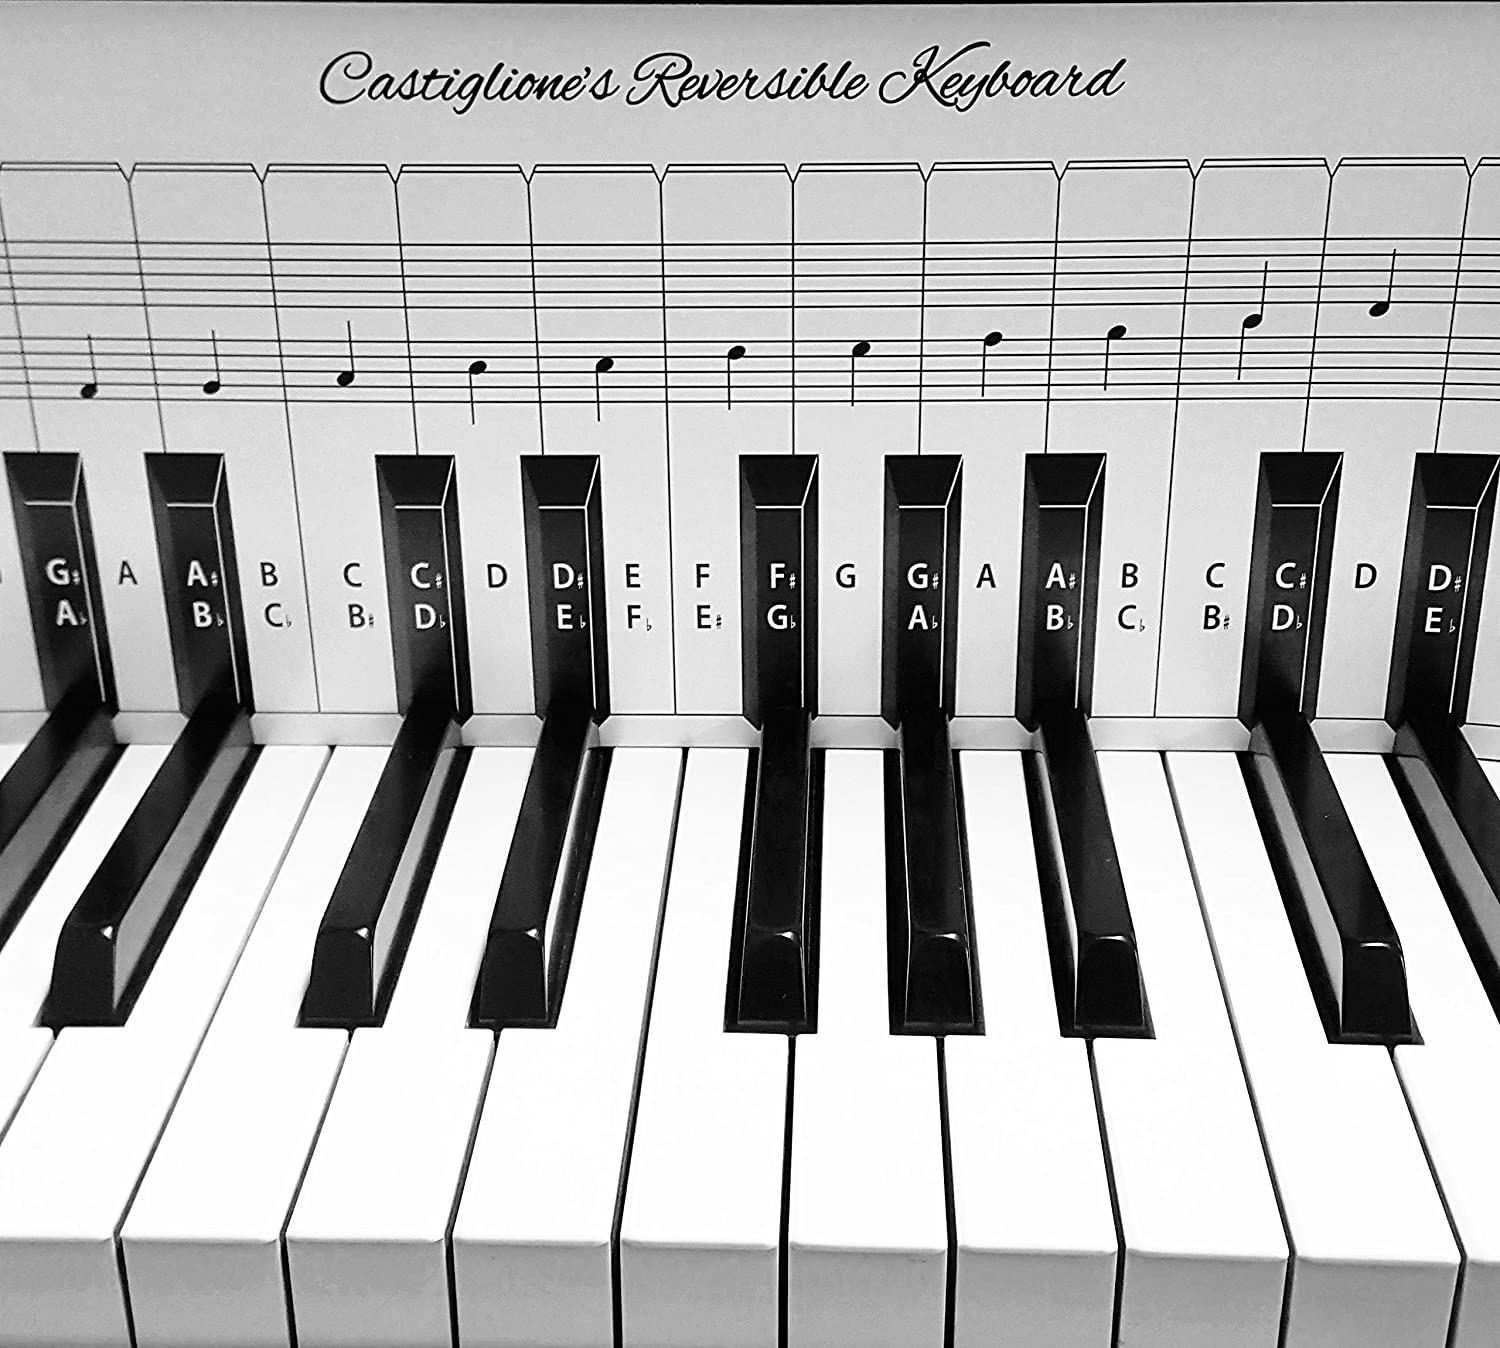 Amazon practice keyboard note chart for behind the piano amazon practice keyboard note chart for behind the piano keys musical instruments hexwebz Image collections